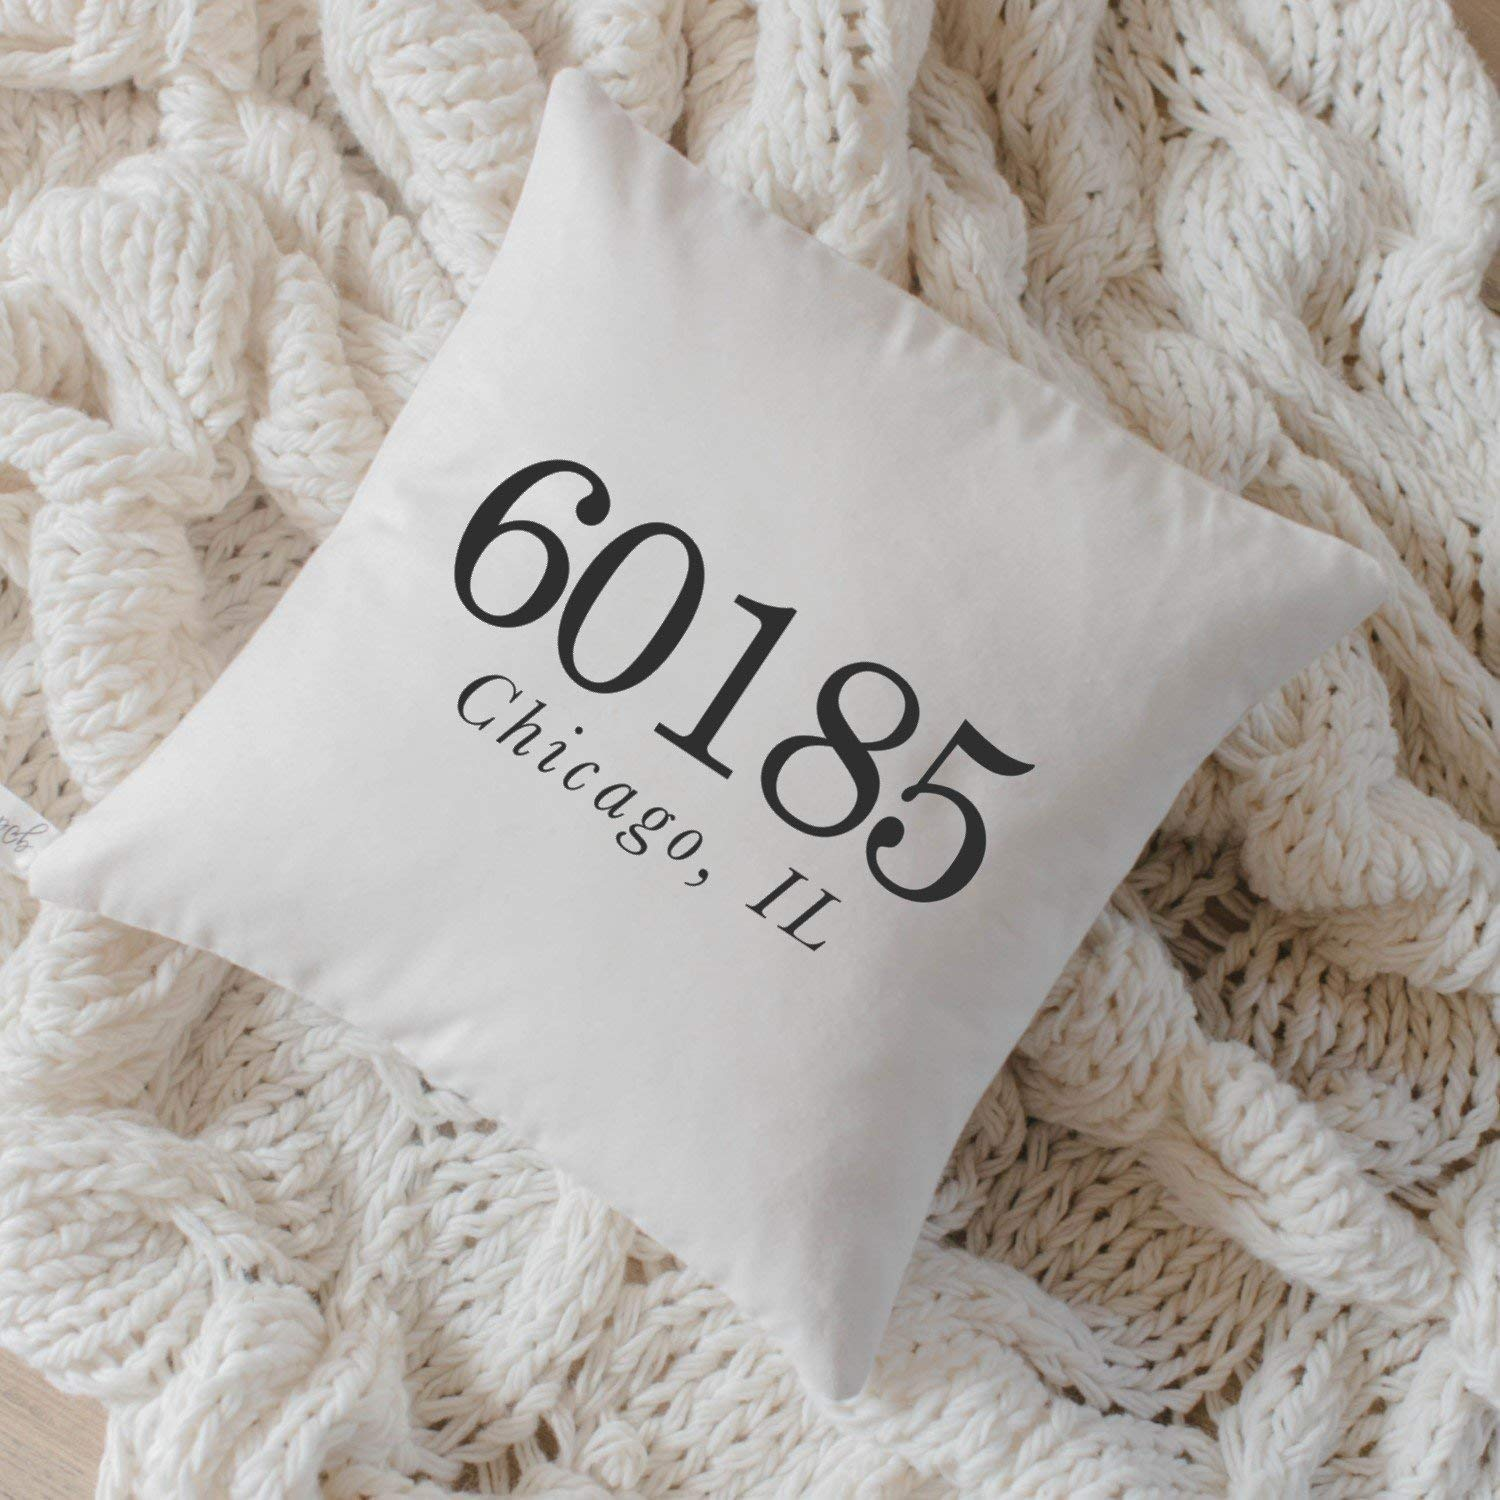 Amazon Com Personalized Throw Pillow Zip Code Handmade In The Usa Calligraphy Home Decor Wedding Gift Engagement Present Housewarming Gift Cushion Cover Throw Pillow Handmade